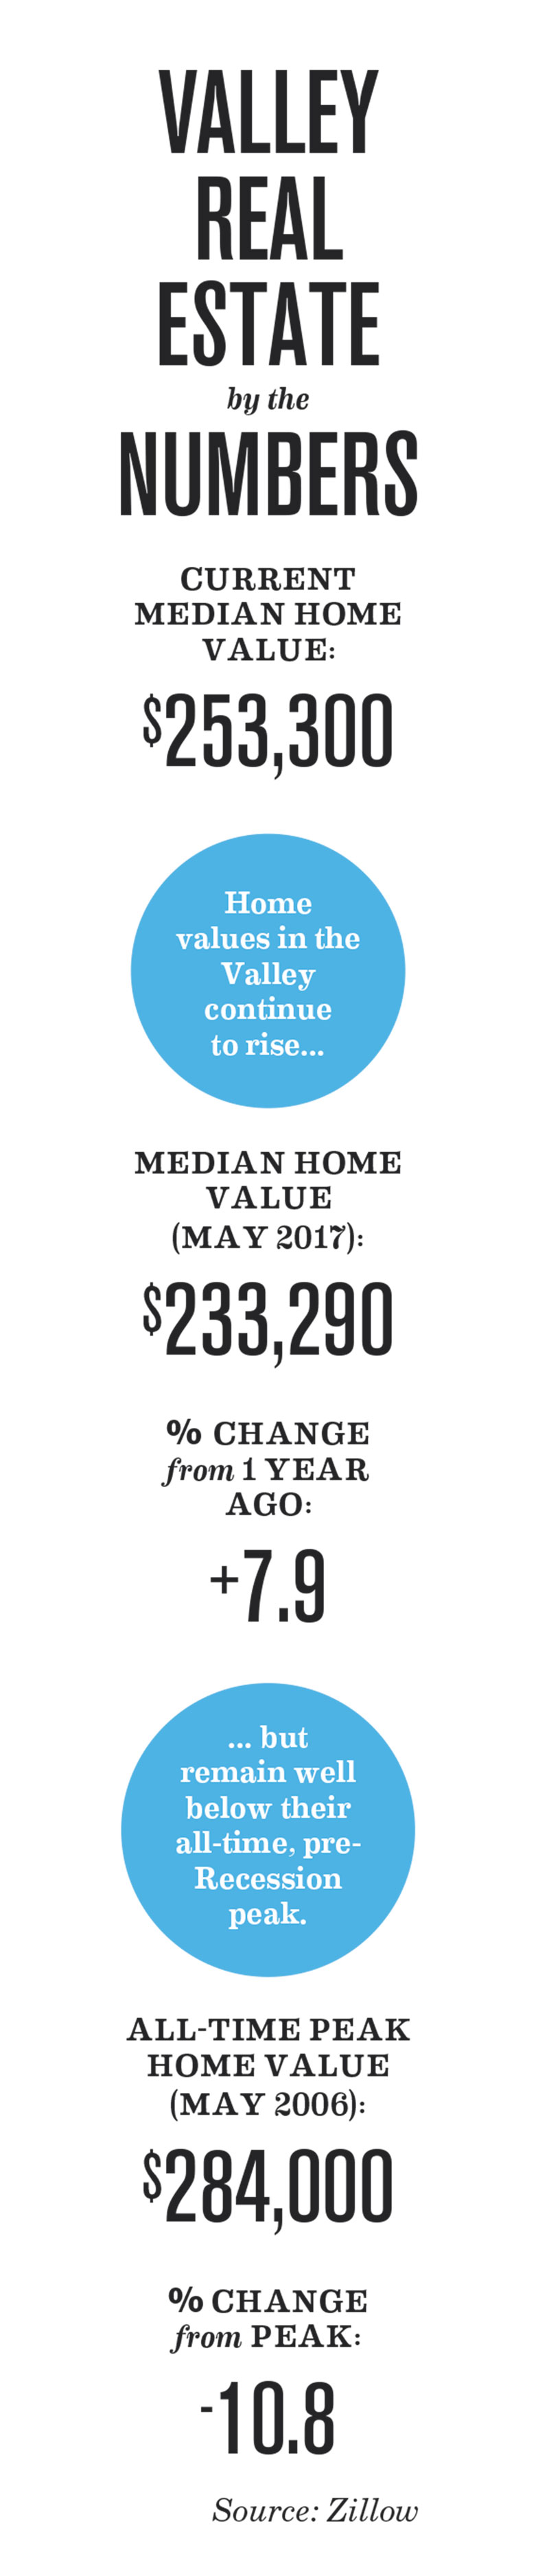 Valley Real Estate by the Numbers